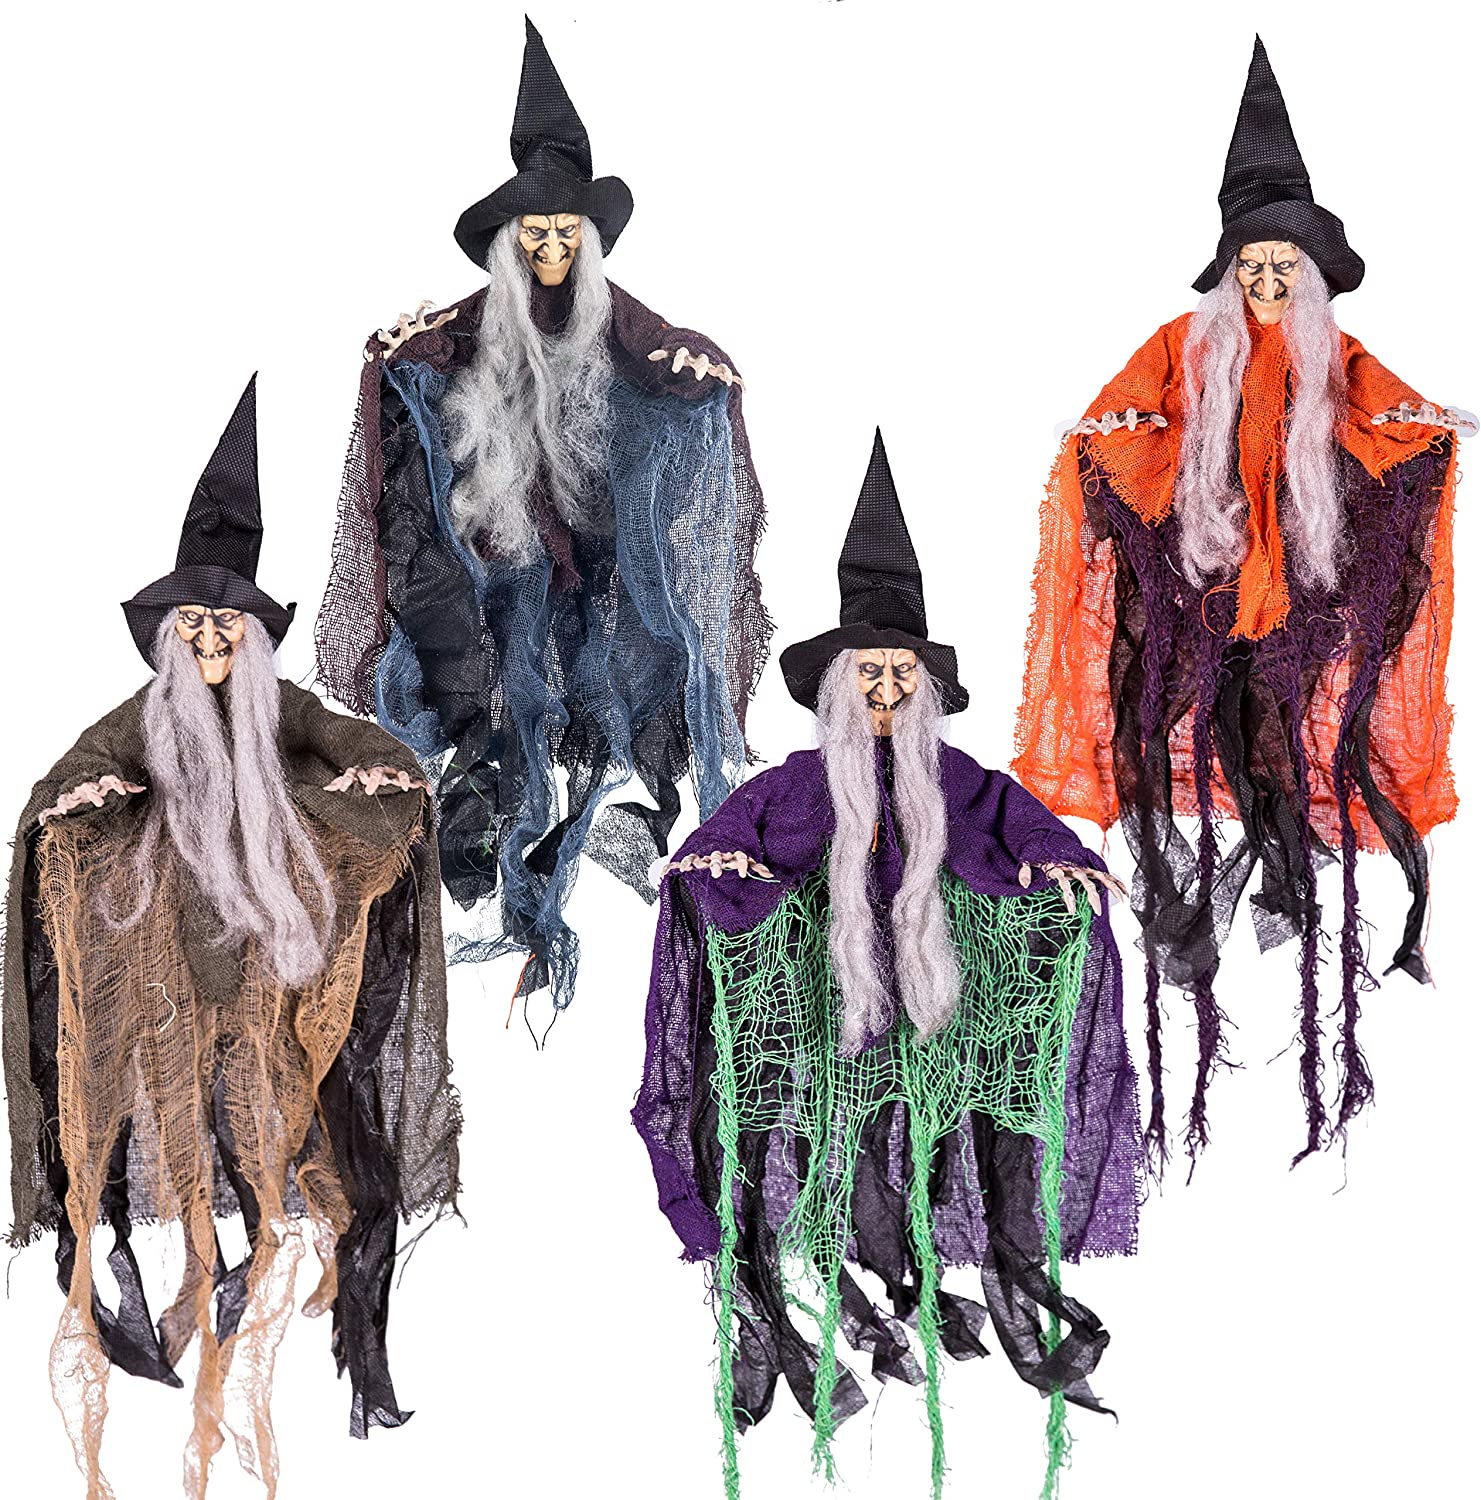 "19.6"" Halloween Hanging Wicked Witch in multi-color (4 Packs) Halloween Hanging Witch Prop Decor for Outdoor Hanging Decorations, Lawn Decor"